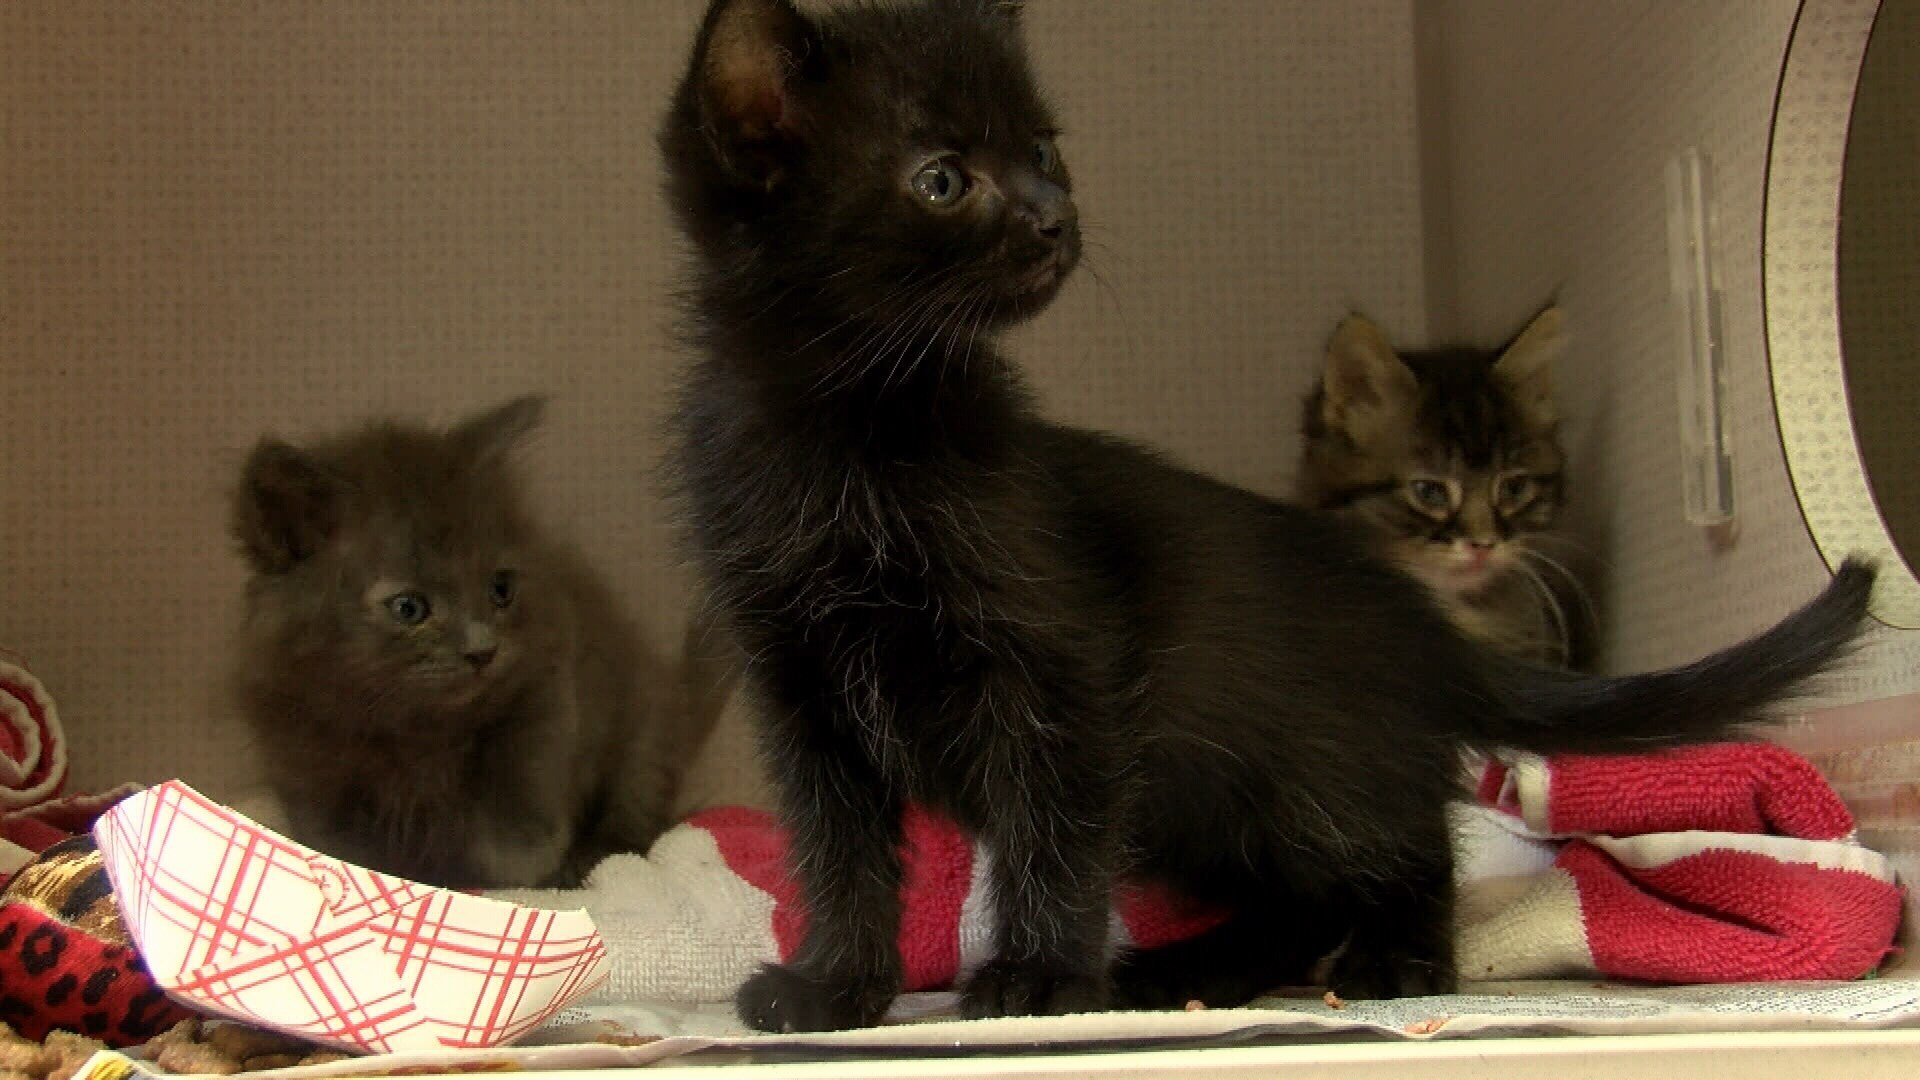 Kittens at San Luis Obispo County Animal Services. (KSBY photo)